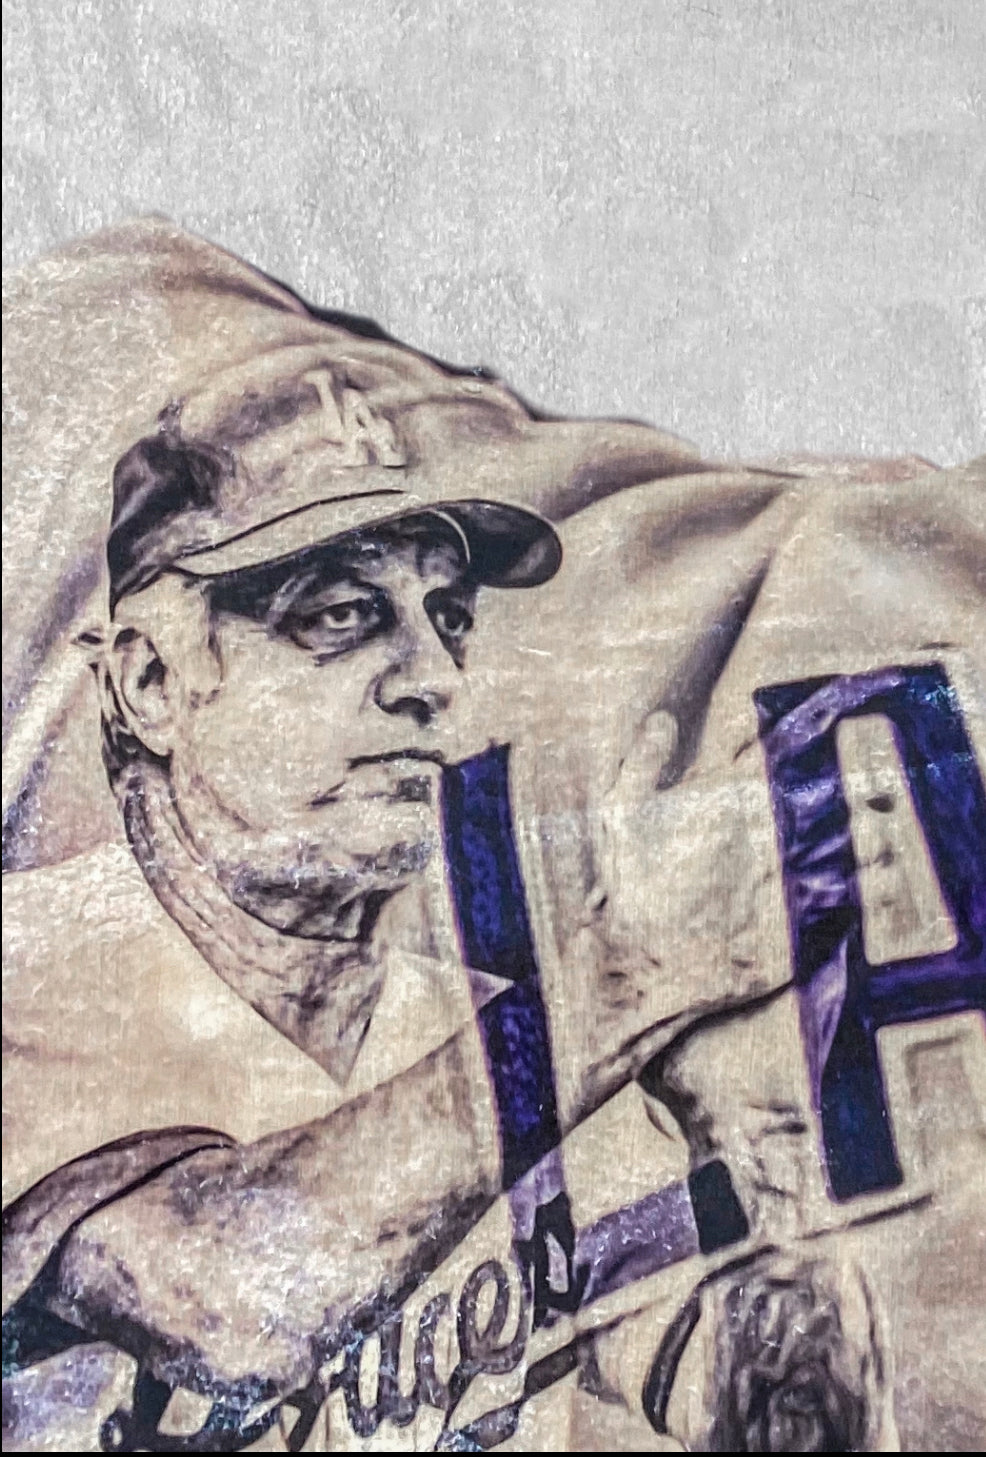 """Best Wishes"" (Tommy Lasorda) Los Angeles Dodgers - 1/1 Original on birchwood"